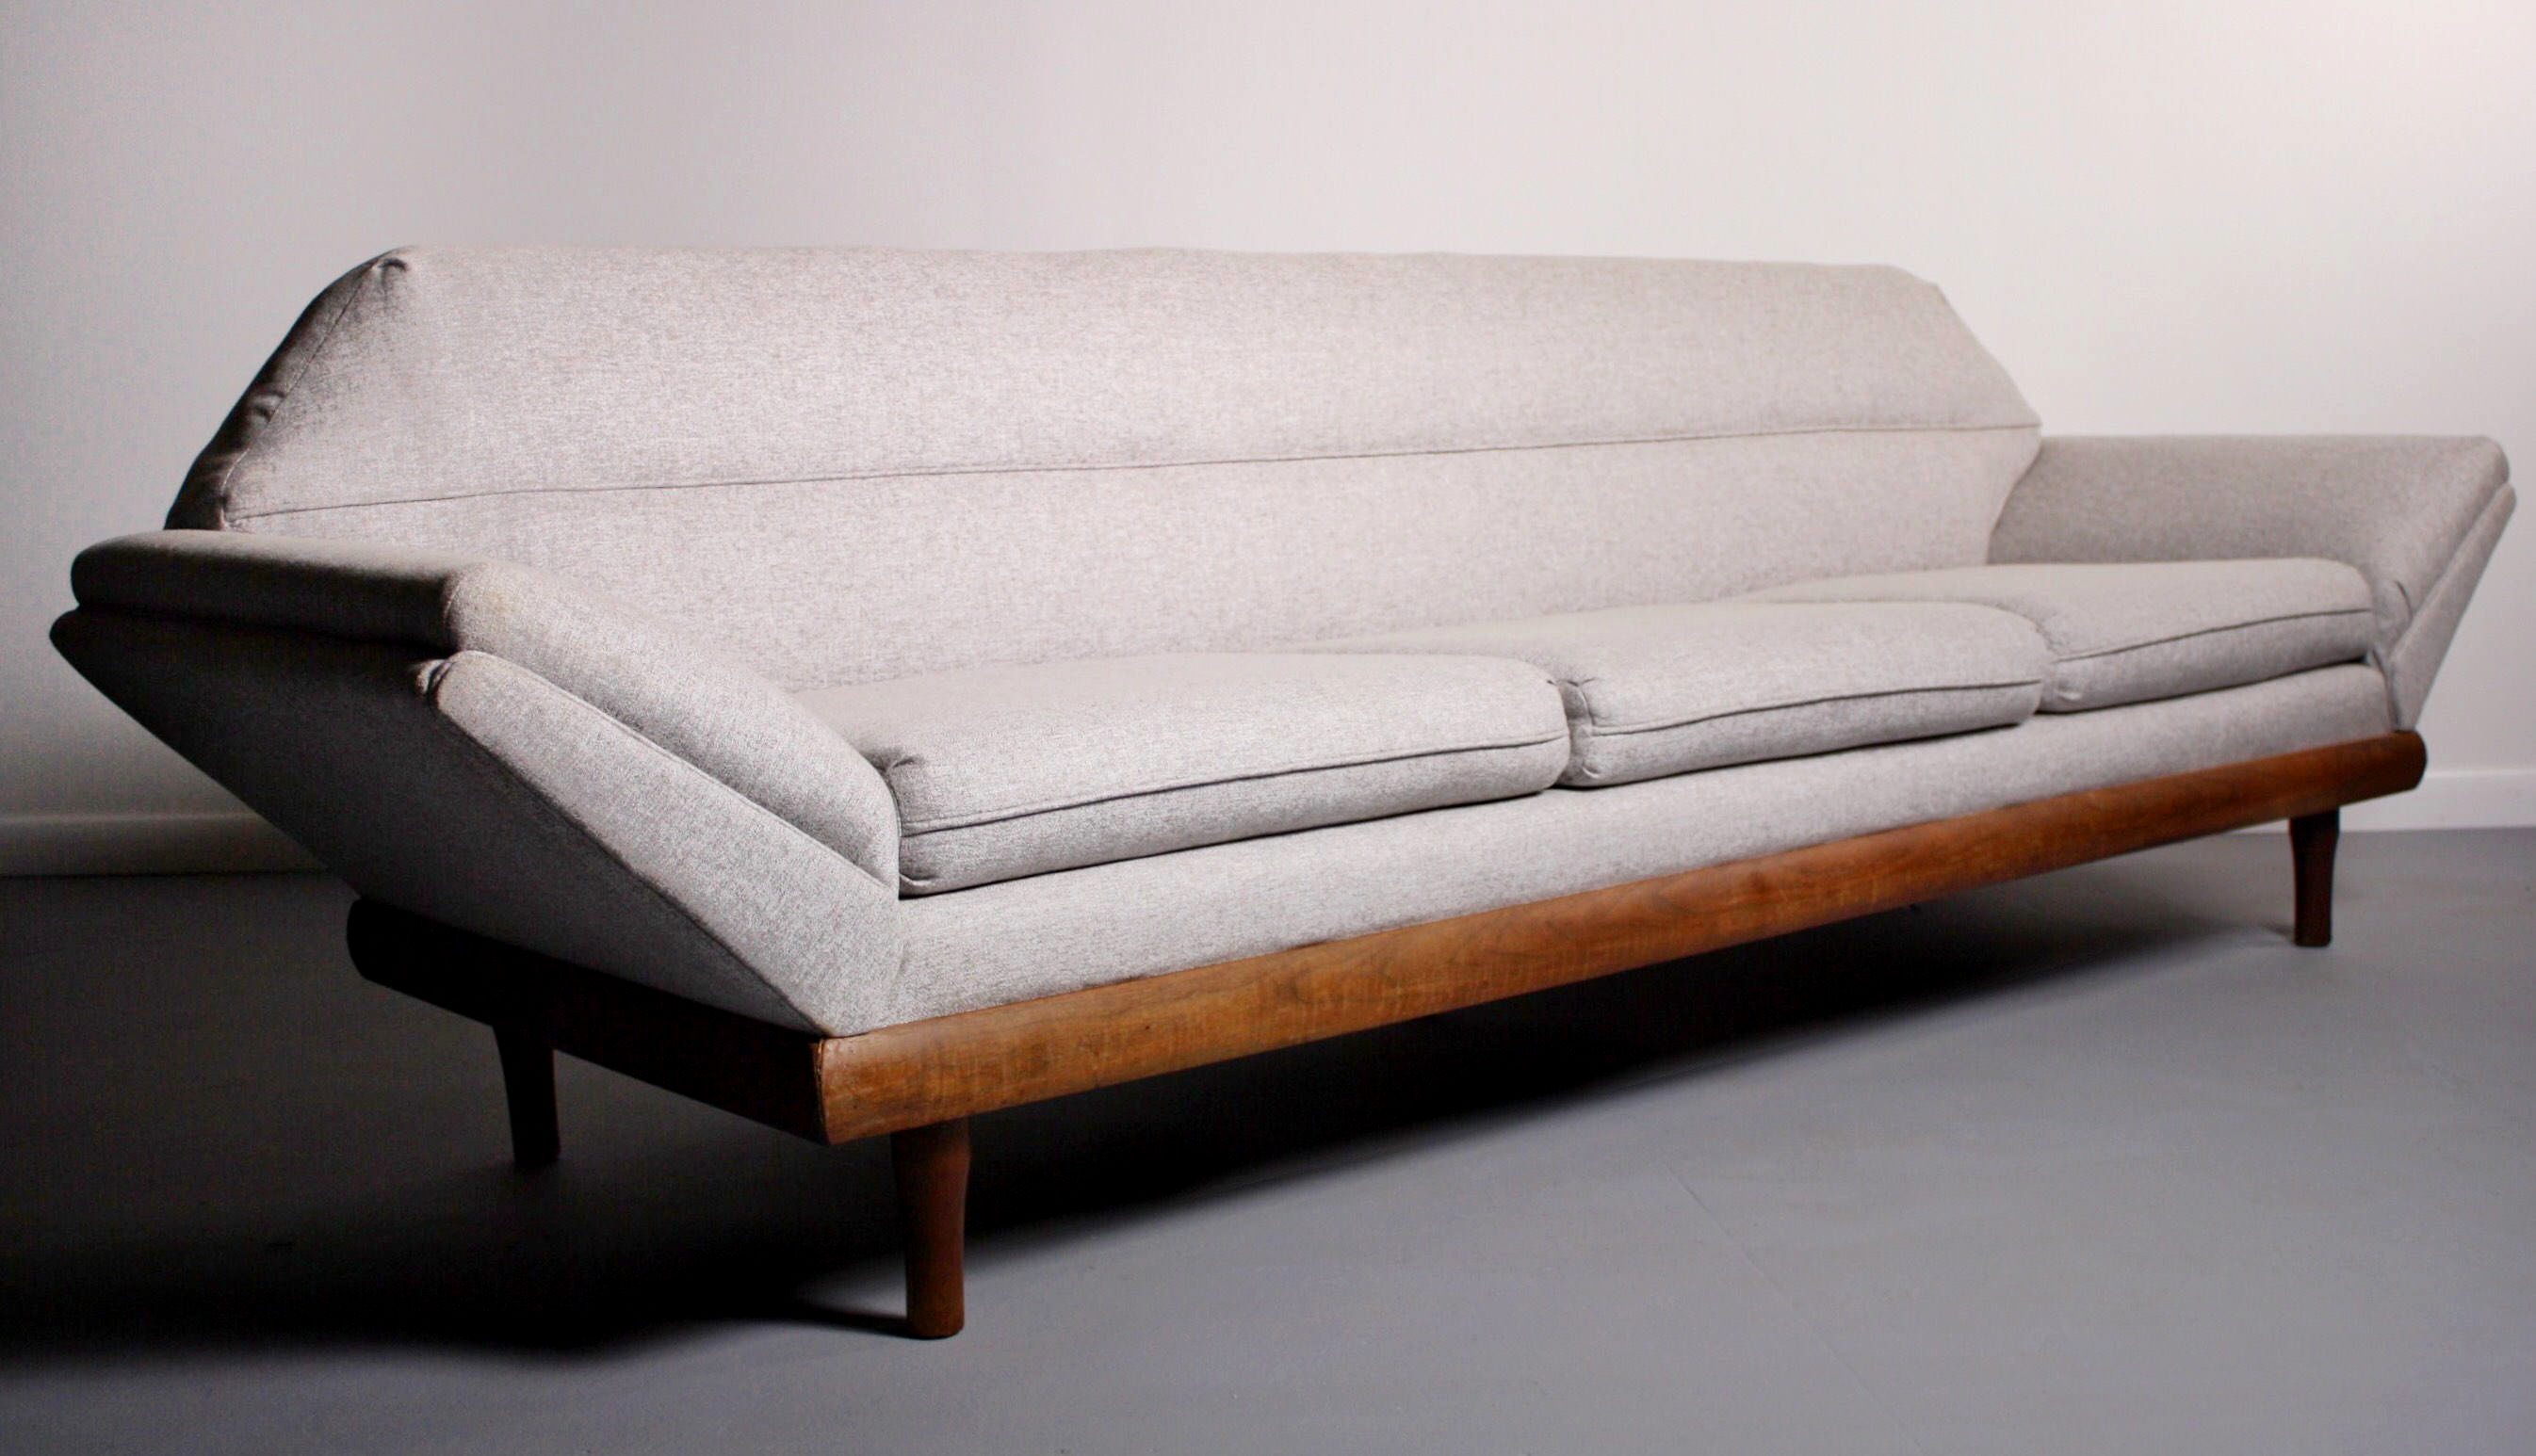 fantastic century furniture sofa collection-Amazing Century Furniture sofa Inspiration